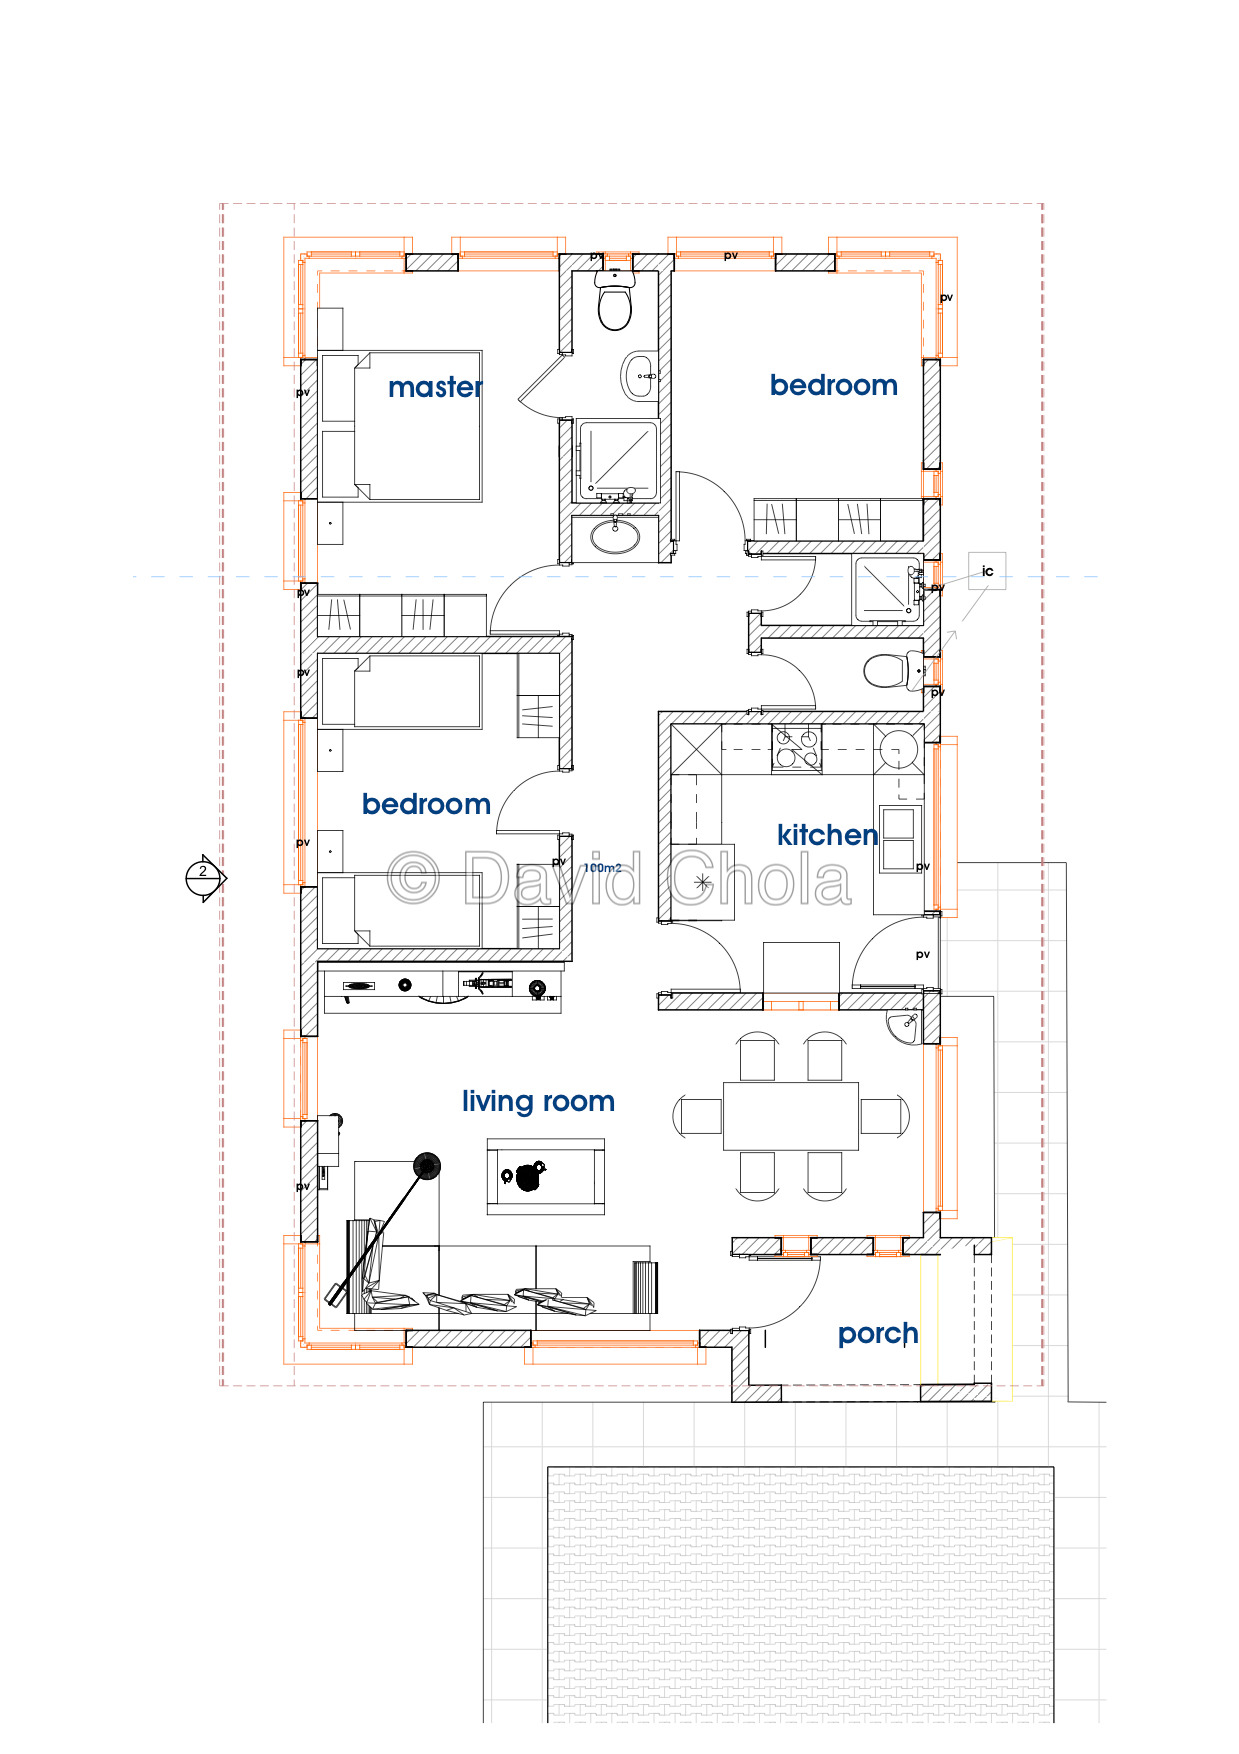 Average Cost Of House Plans Lovely David Chola – Architect – House Plans In Kenya – the Bud